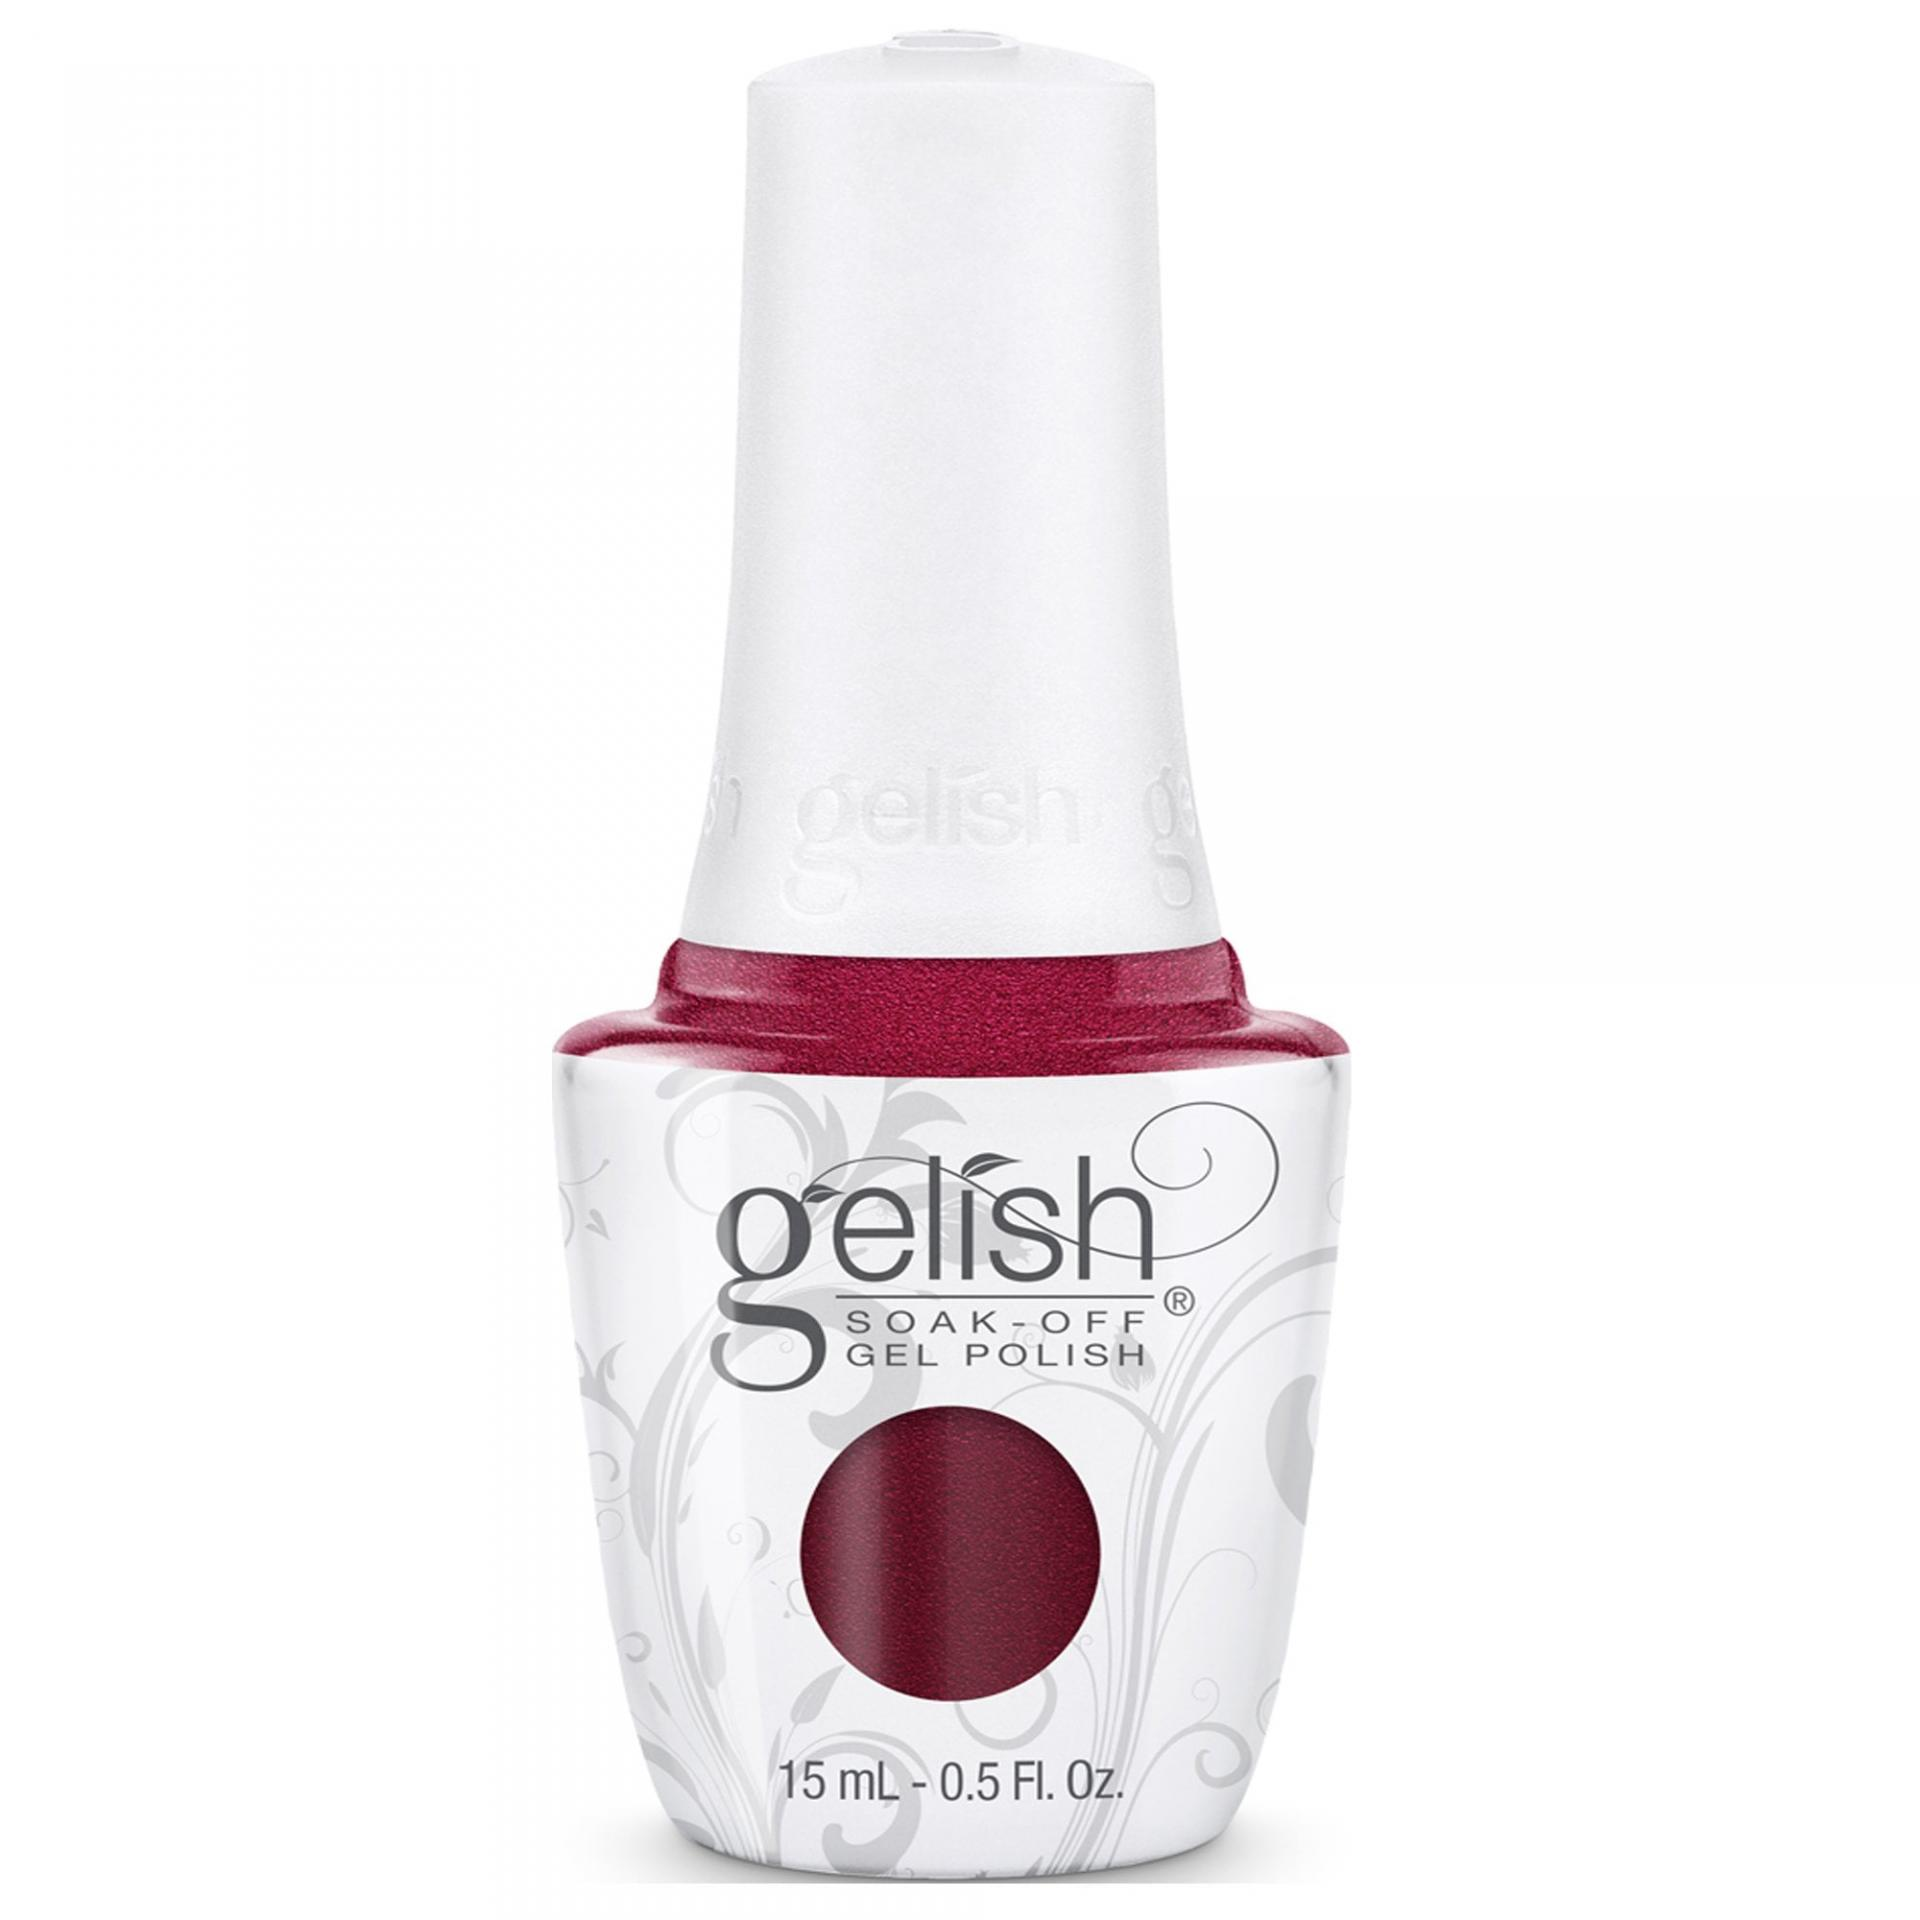 Gelish forever fabulous 2018 gel polish collection wish upon a starlet 15ml 1110329 p25756 100390 zoom